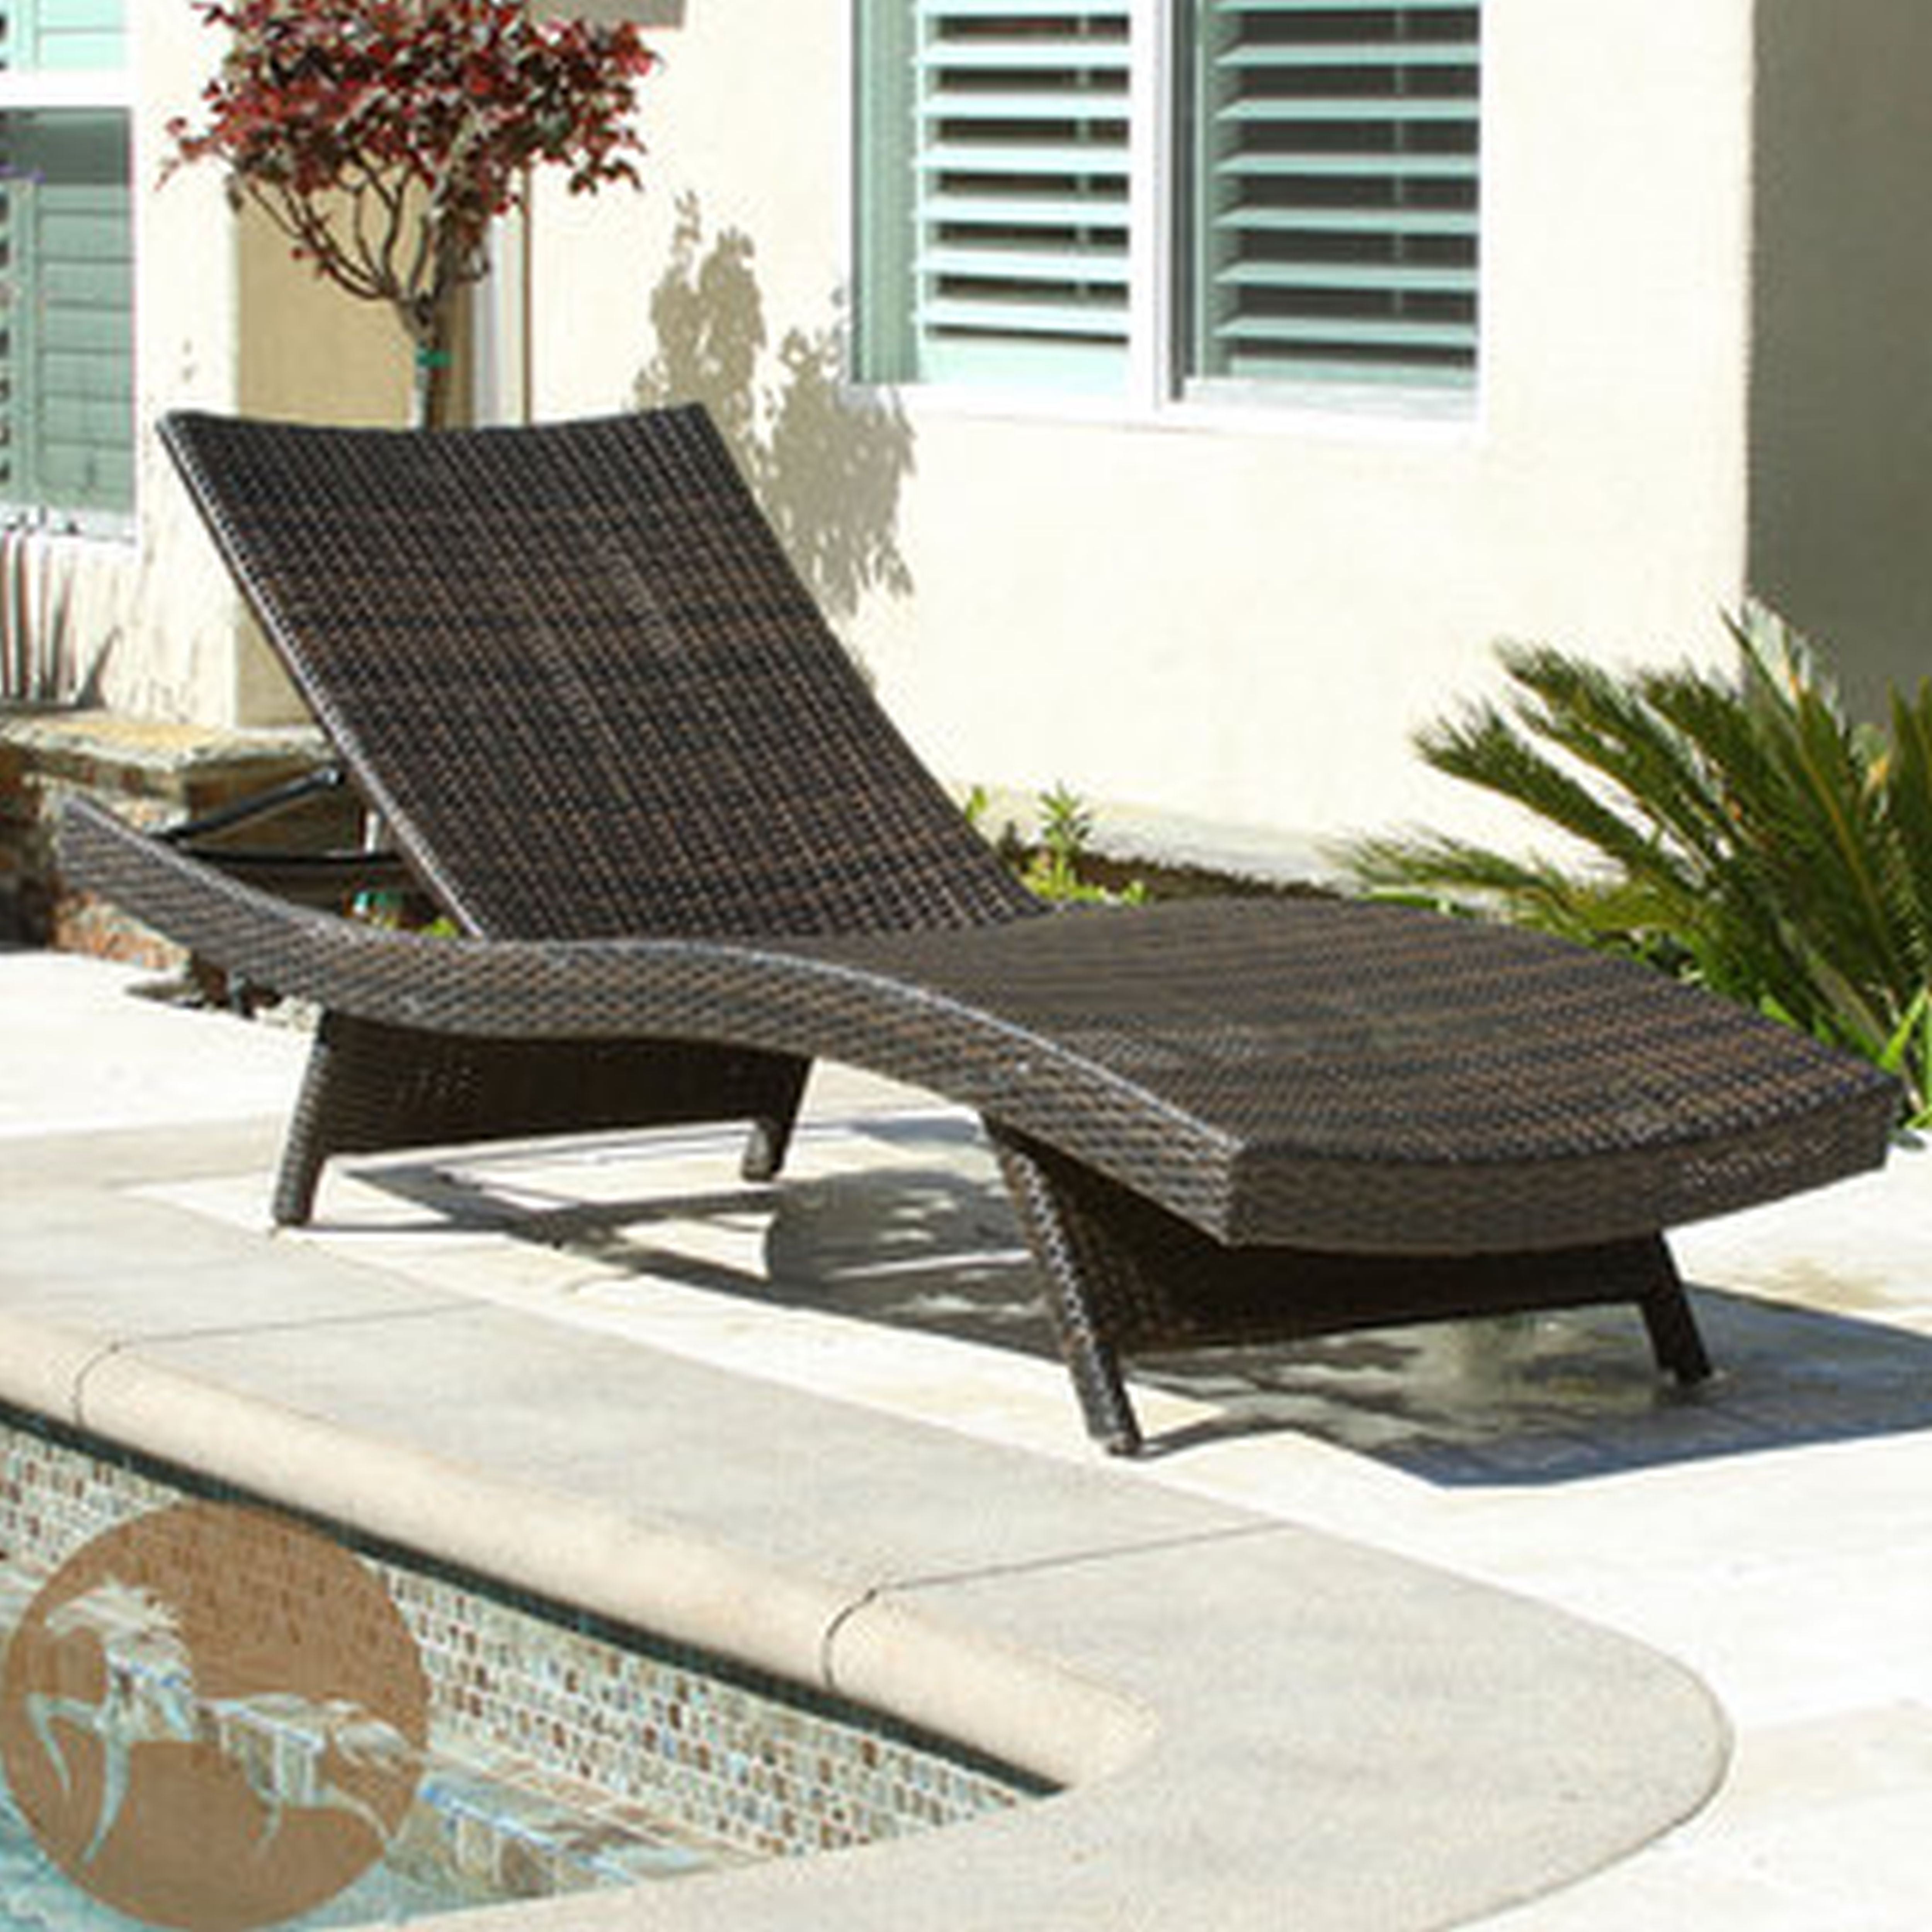 15 Inspirations Of Chaise Lounge Chairs For Poolside